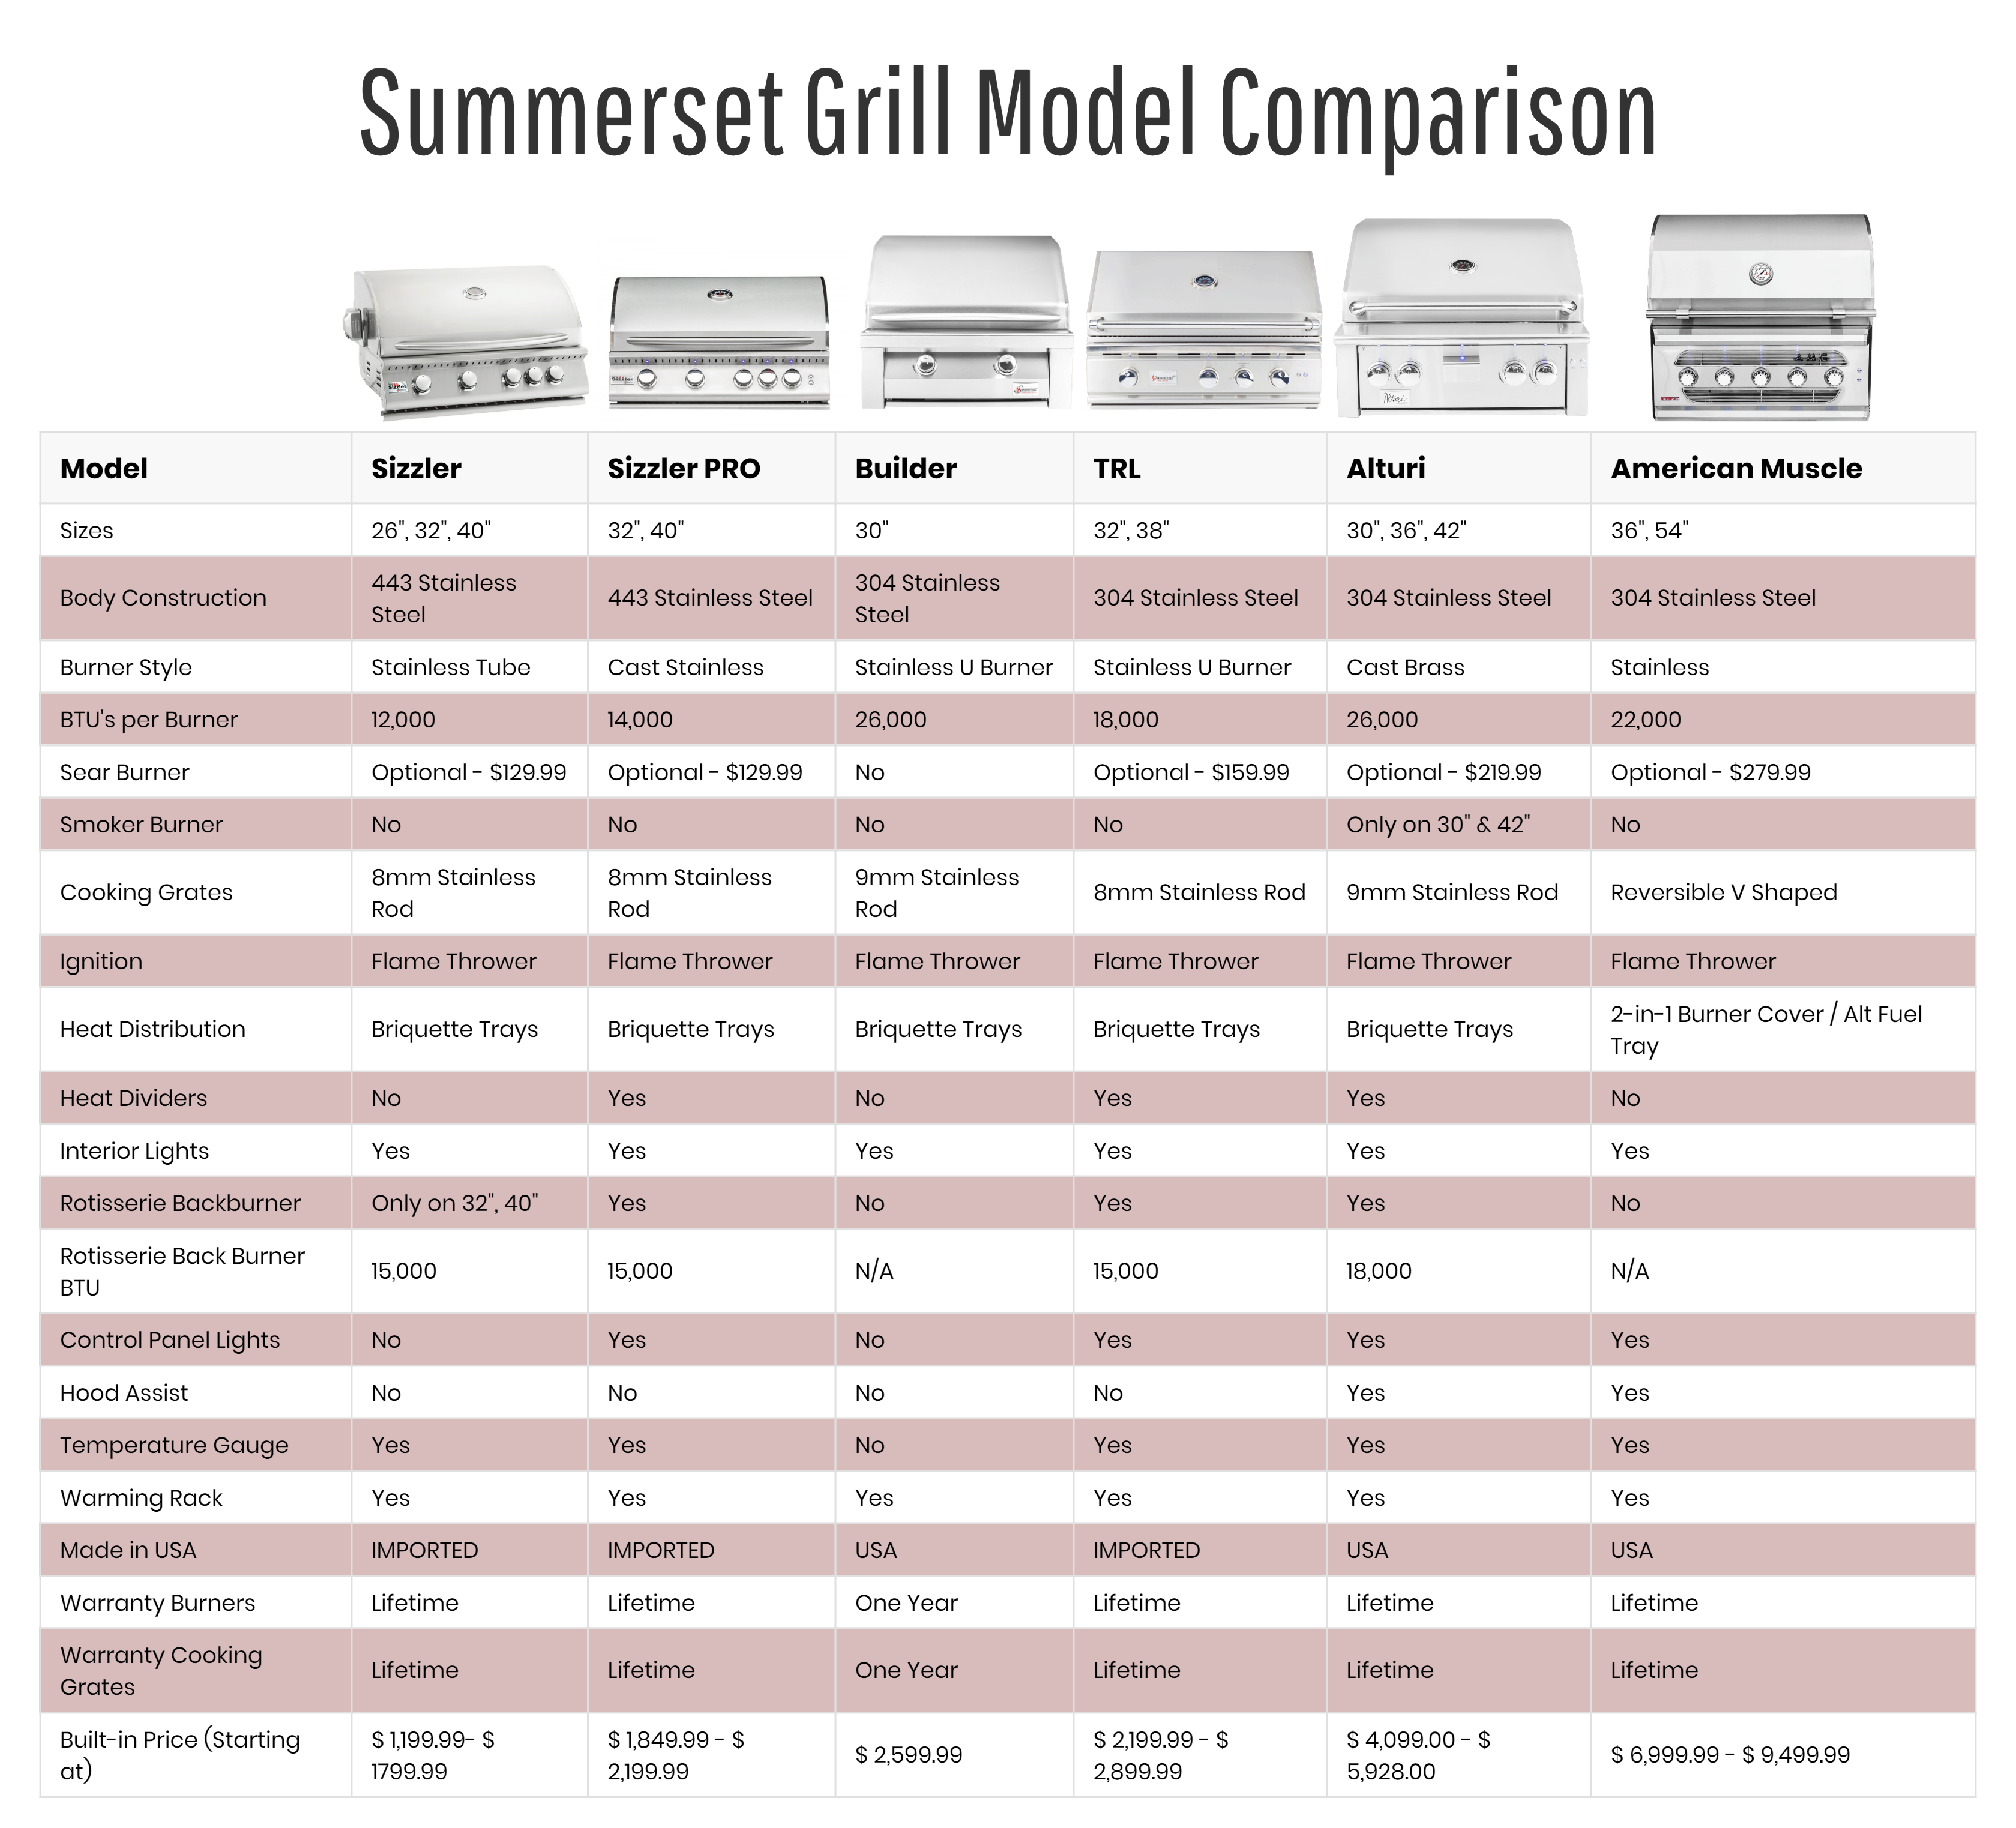 Summerset Grill Model Comparison